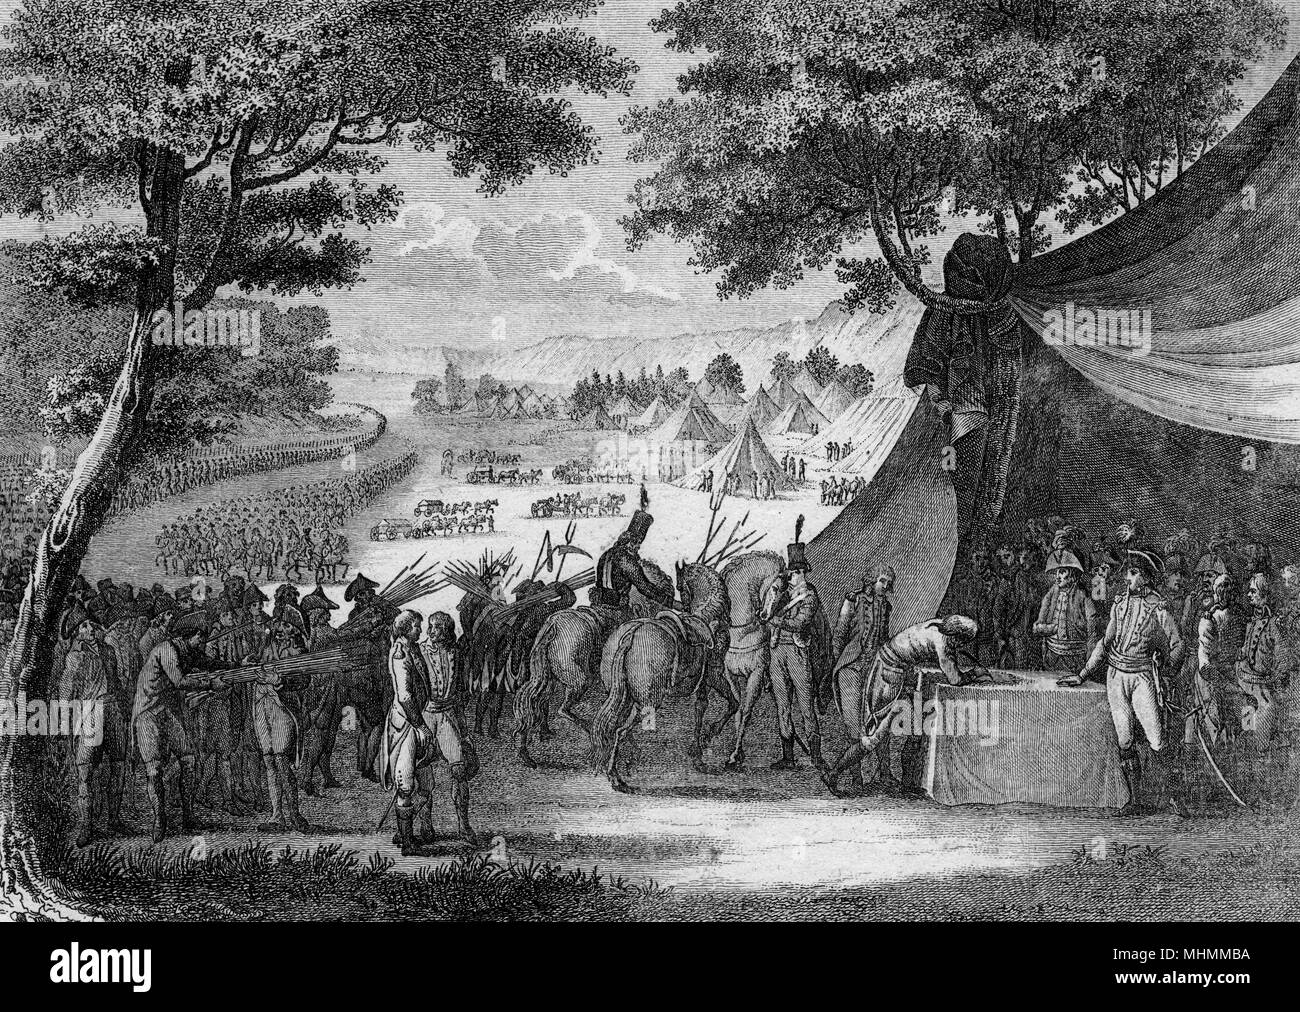 The end of the Vendee war - Hoche signs a treaty with the Bretons ; henceforward the west is officially peaceful, though most retain their anti- republican sympathies.     Date: 20 April 1795 - Stock Image